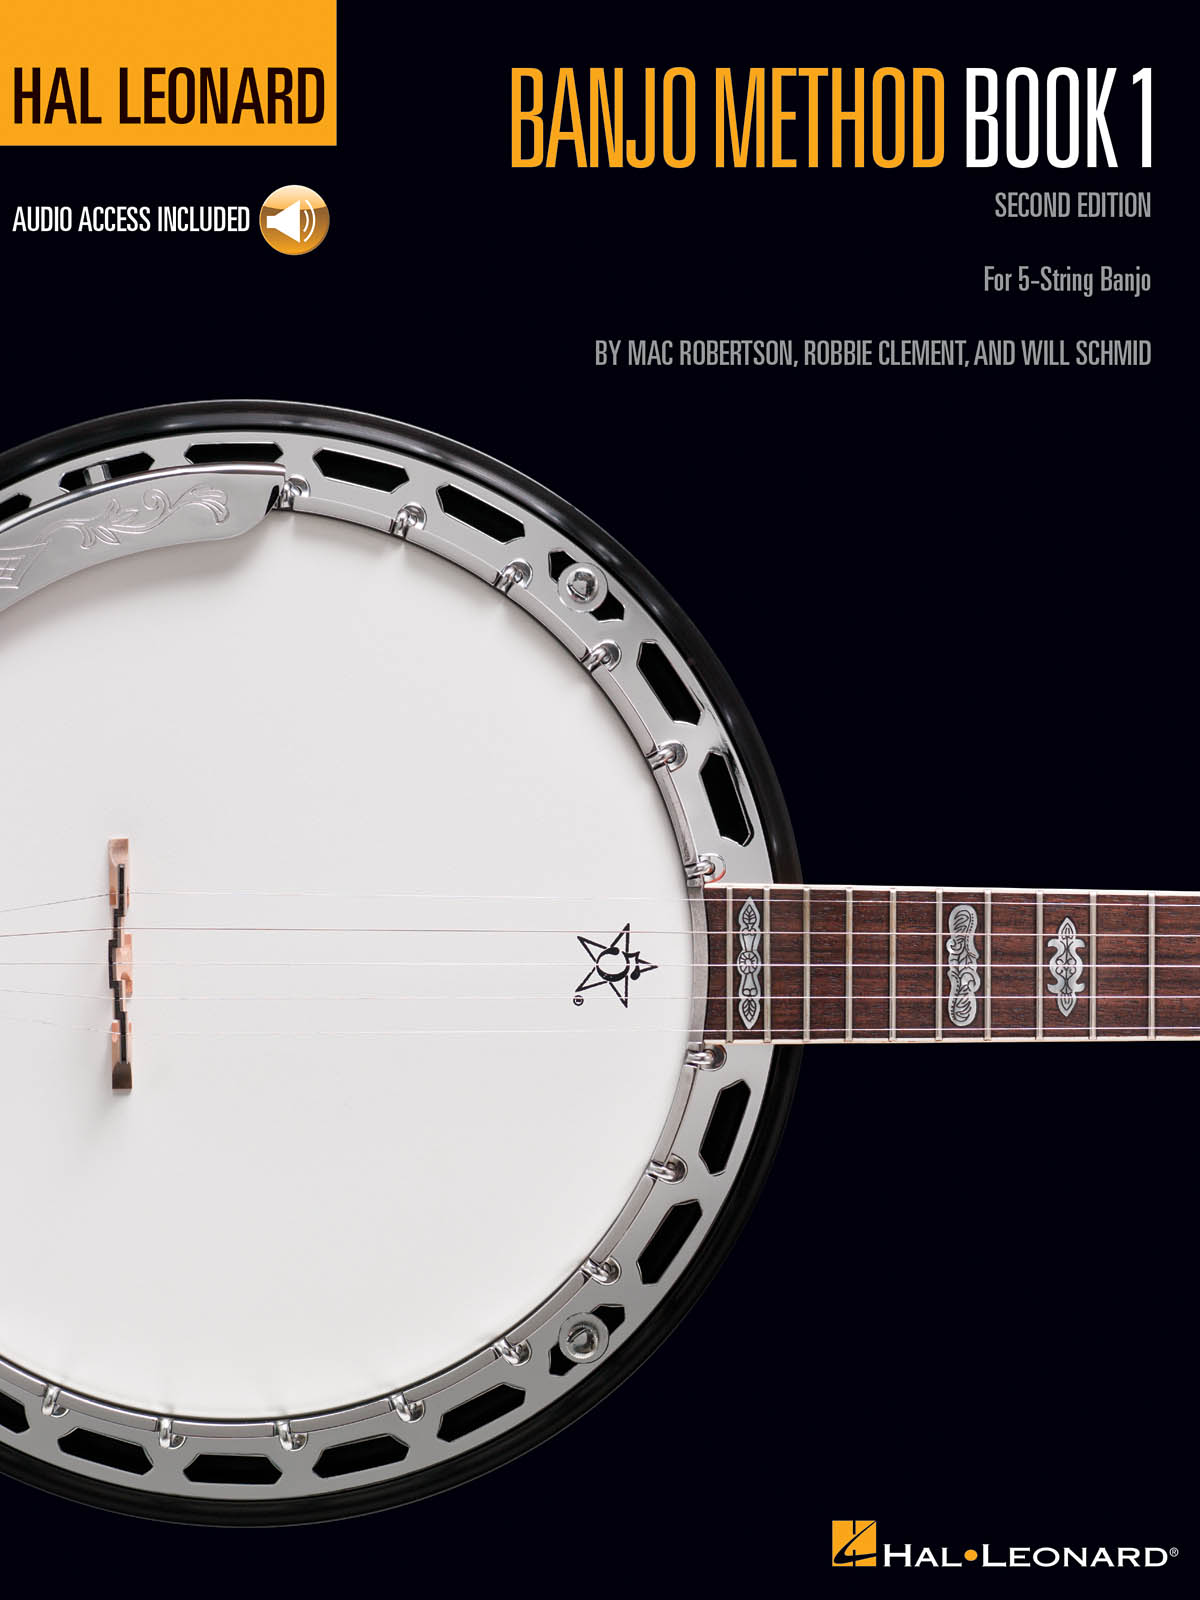 Banjo Method book 1: Banjo: Instrumental Tutor